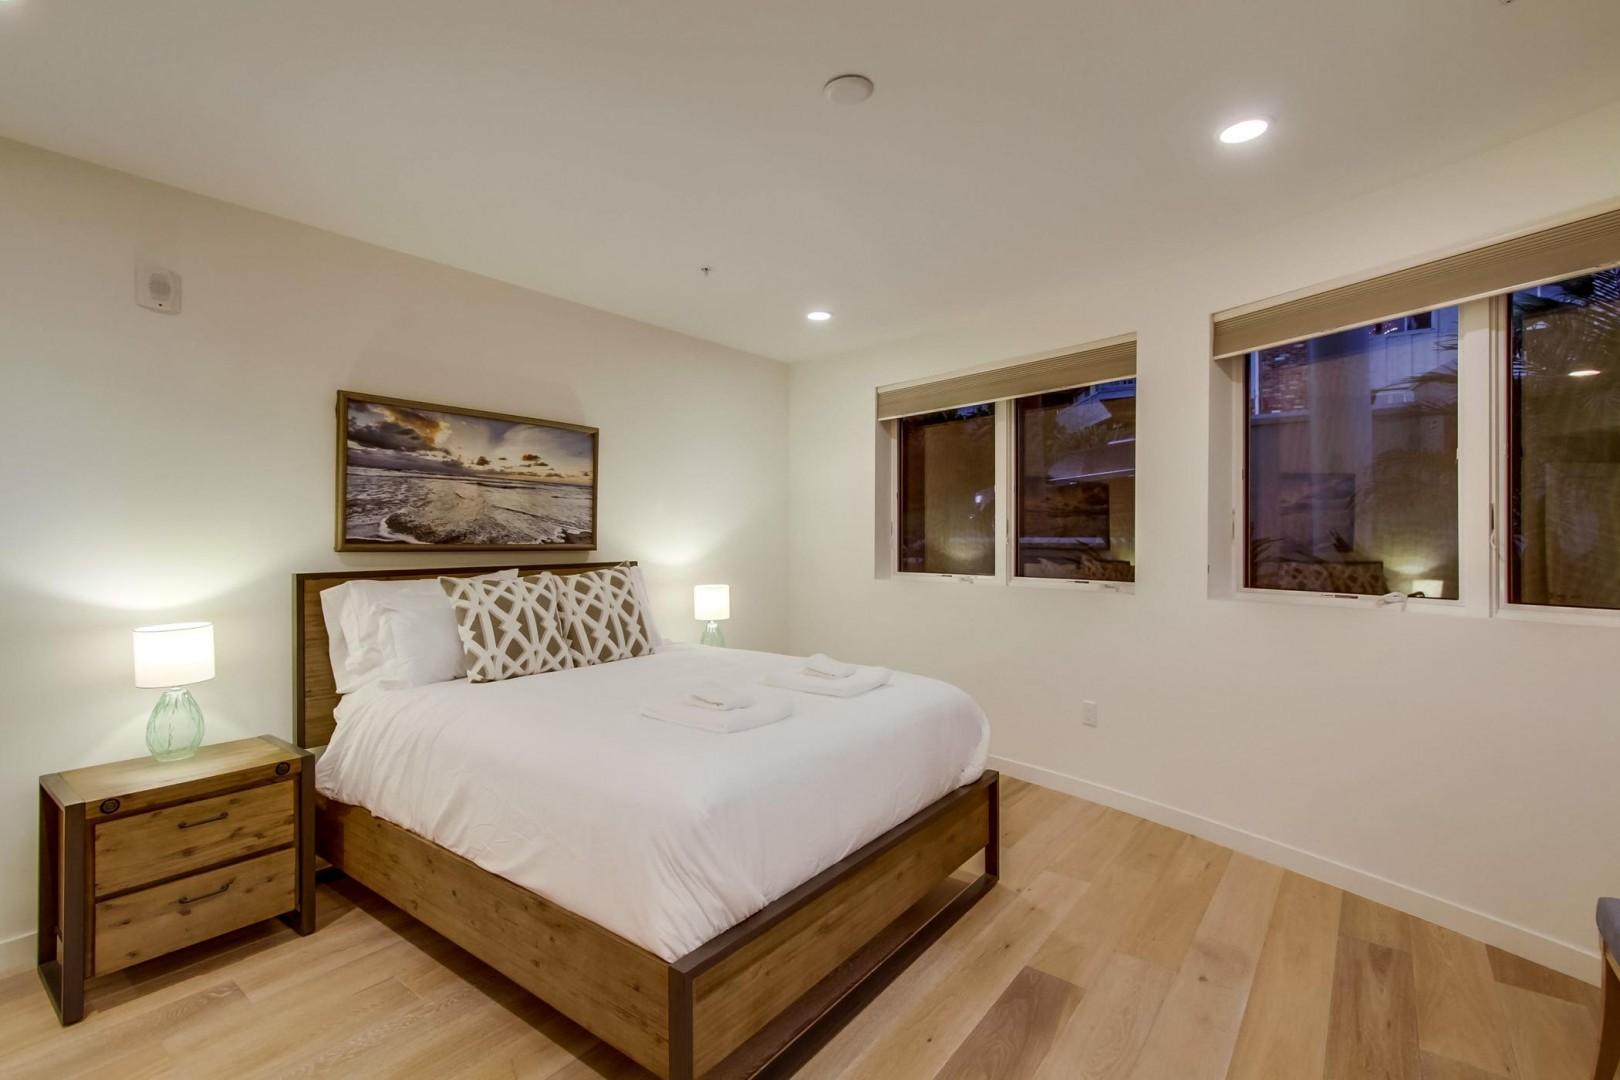 Bedroom 3 features a comfy queen-size and hotel-style linens